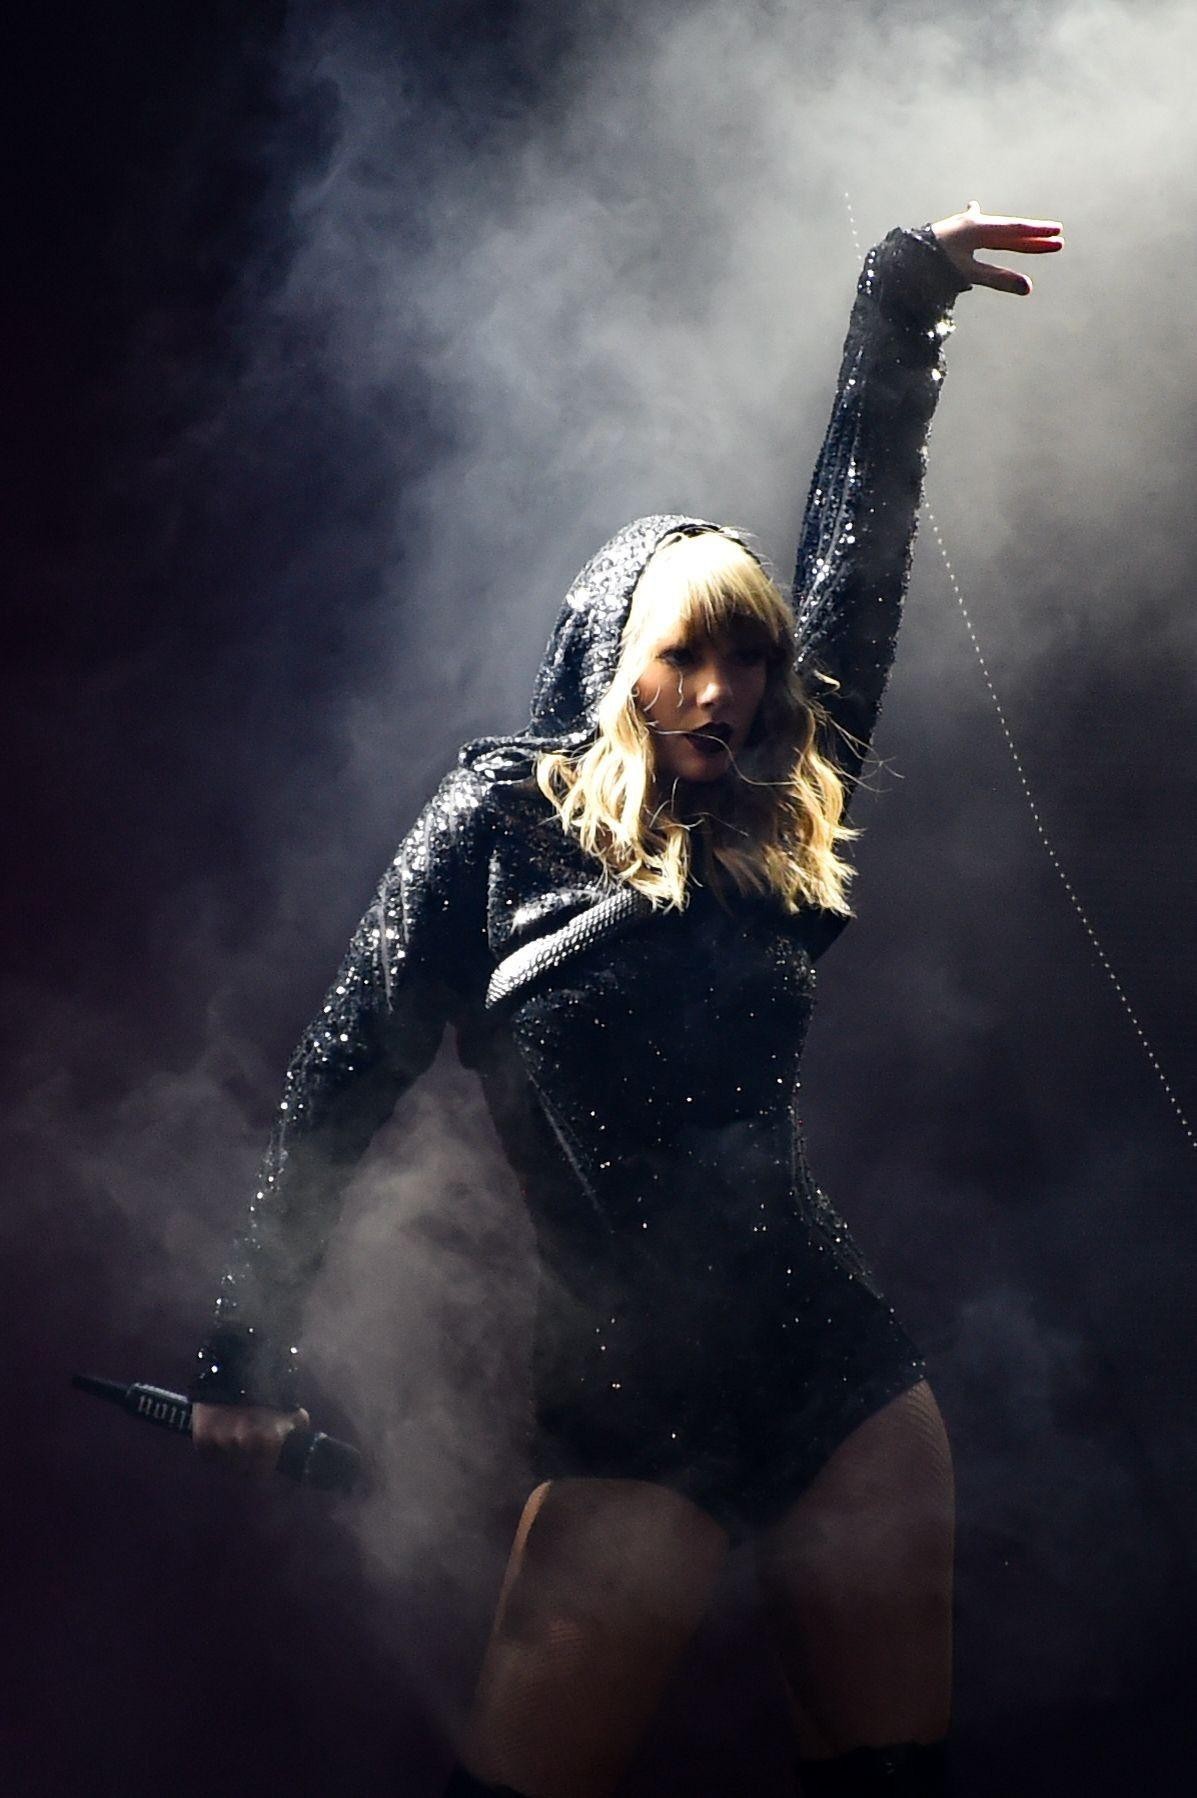 Taylor Swift S Reputation Stadium Tour Wallpapers Wallpaper Cave